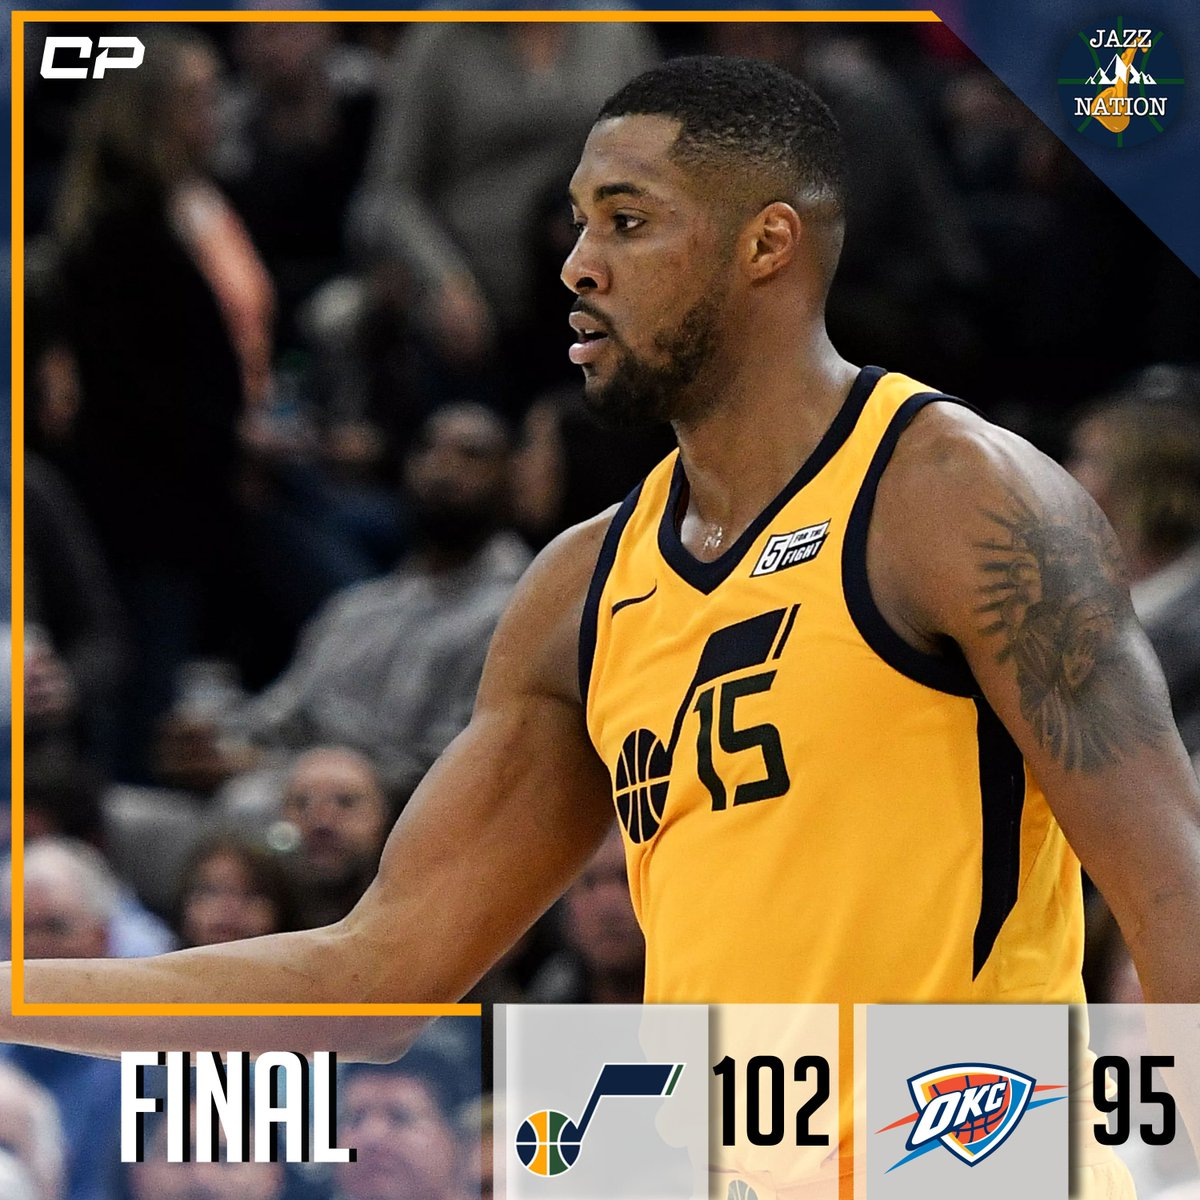 [FINAL] Jazz defeat Thunder, 102-95.  D. Favors: 20 Pts, 16 Reb, 3 Ast.  HIGHLIGHTS: bit.ly/ClutchPoints